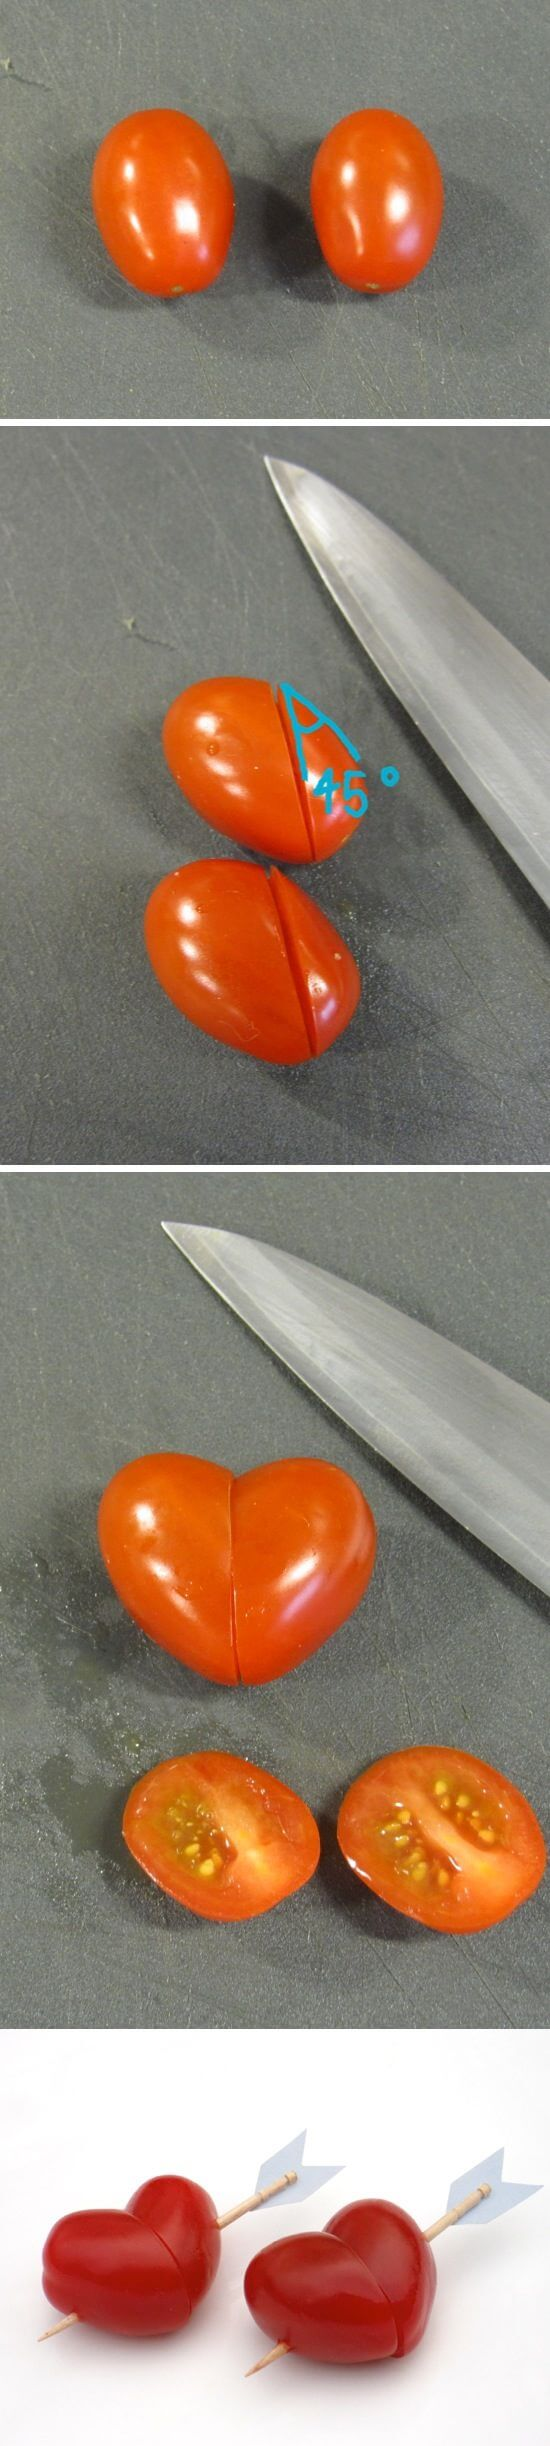 Cherry tomato hearts | Heart-Shaped Crafts For Valentine's Day